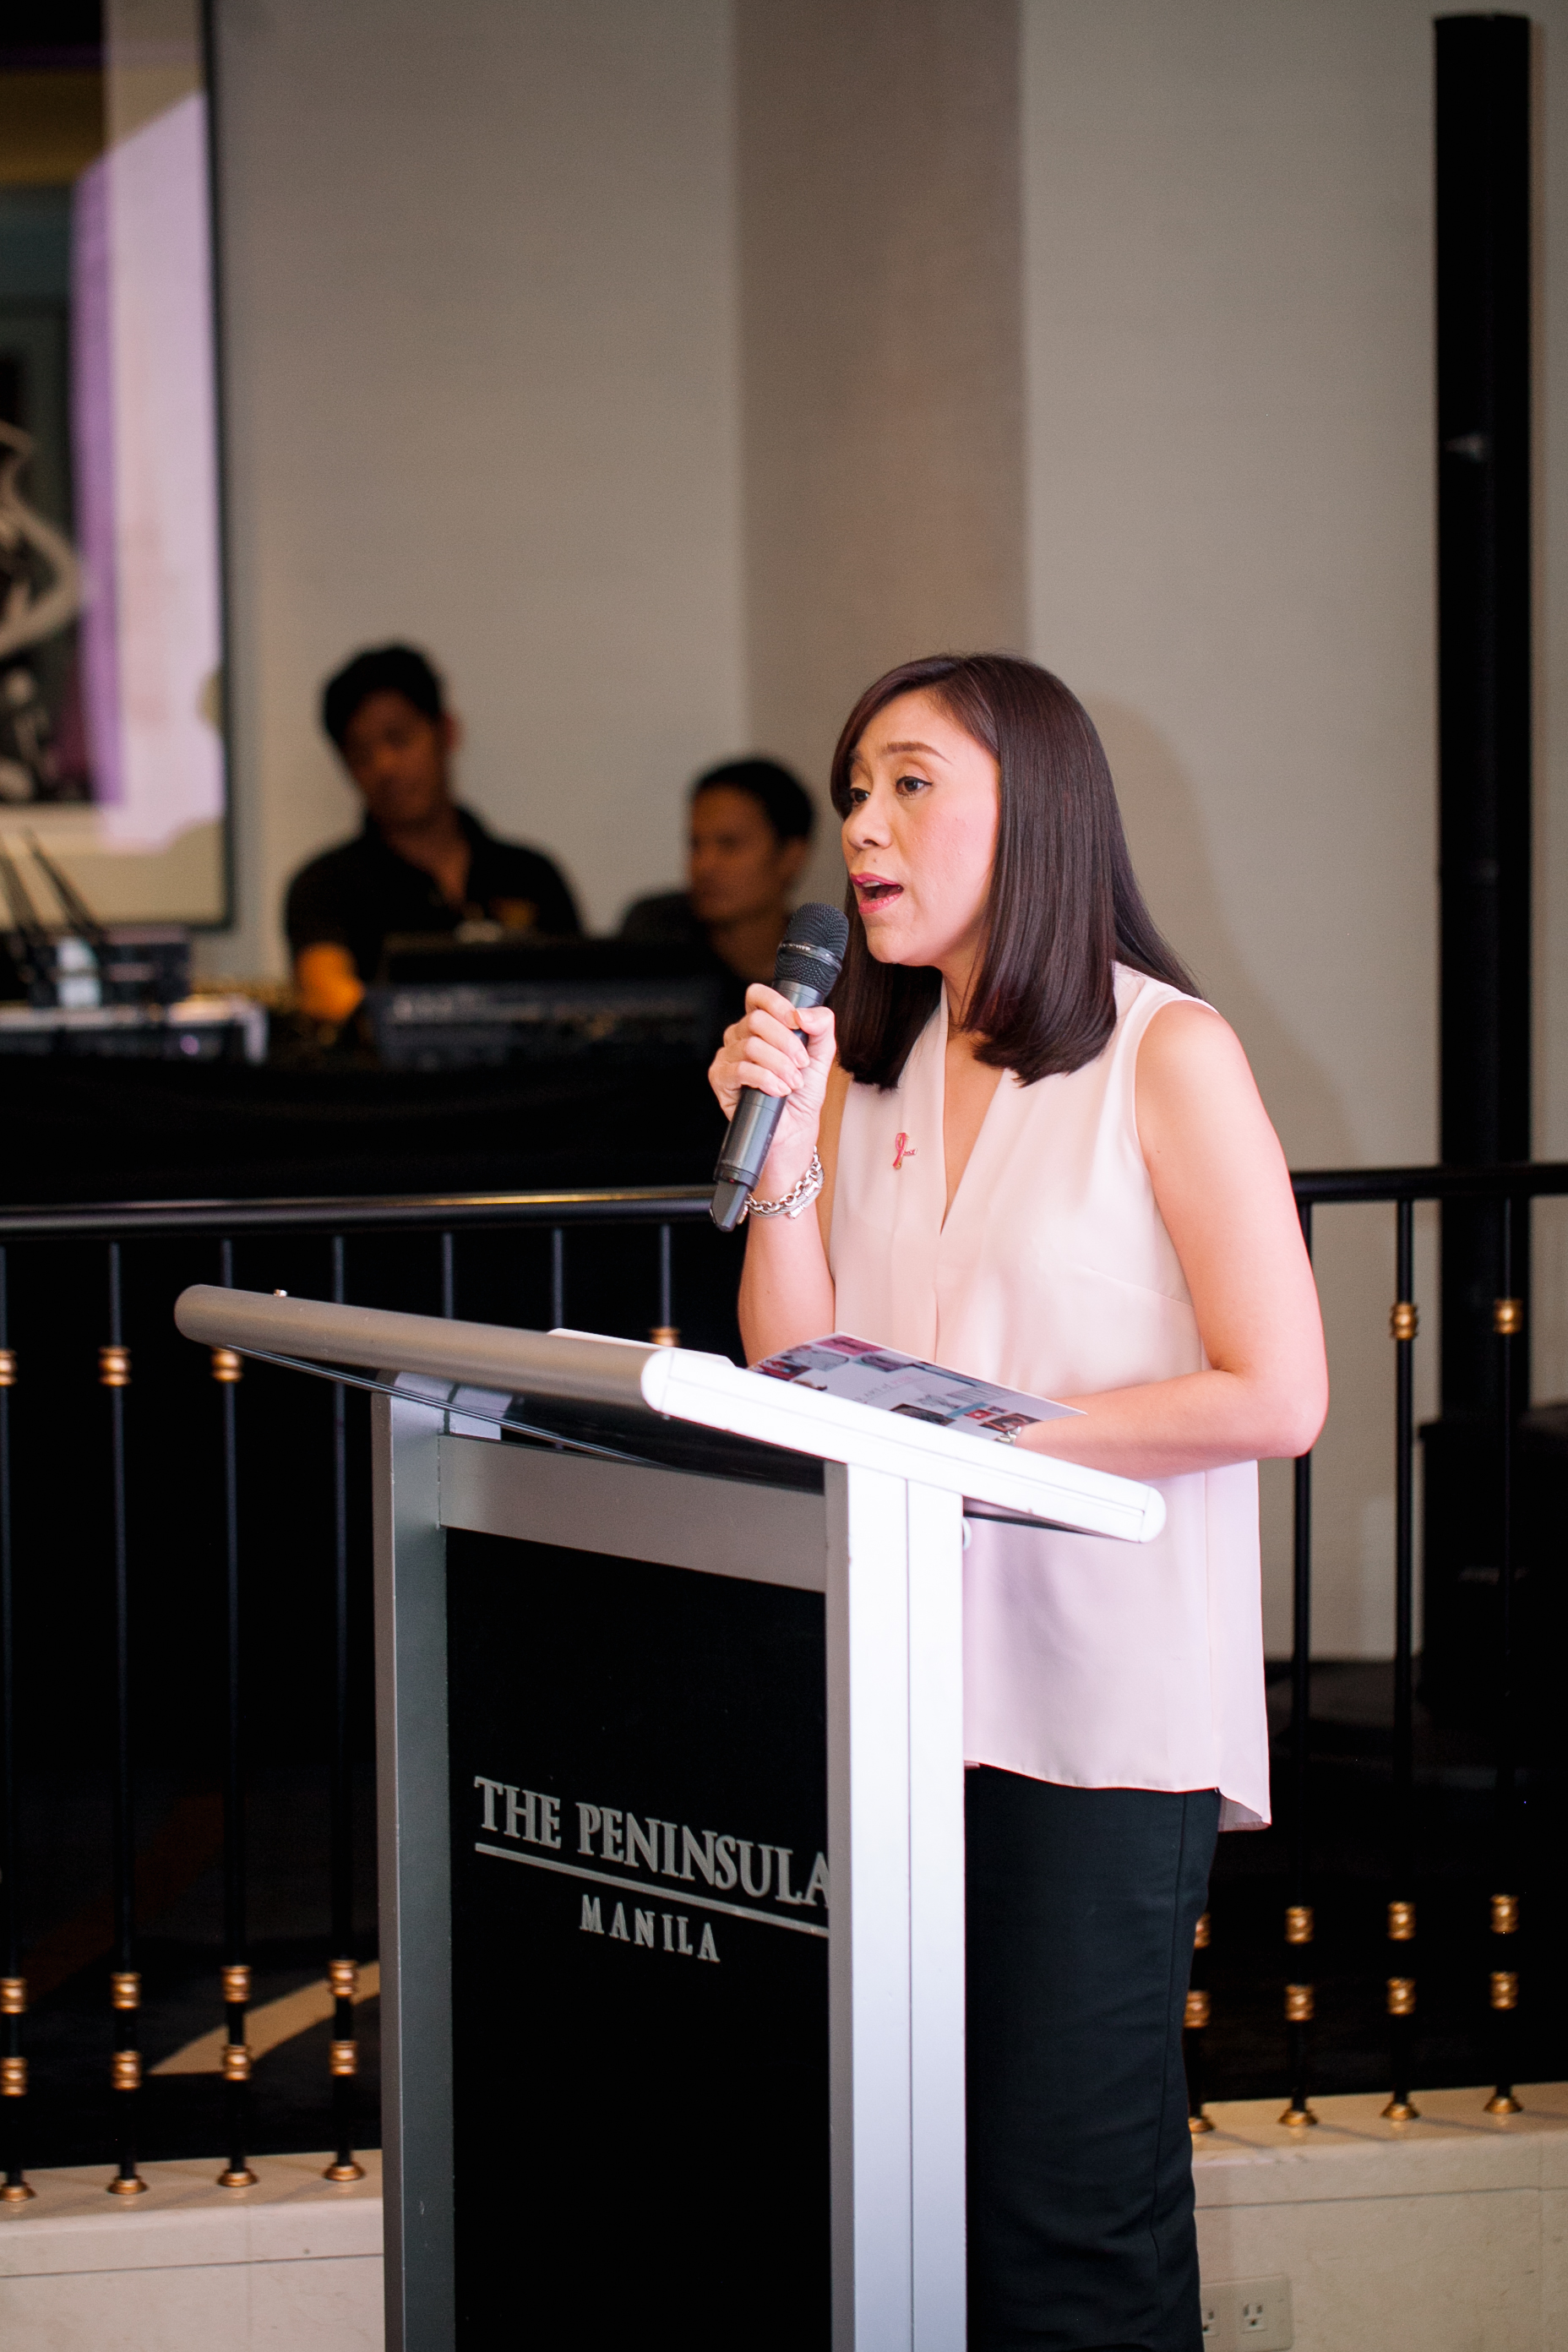 Mel Lerma, Estee Lauder Philinppines Country Manager welcomes everybody and underlines the importance of the campaign